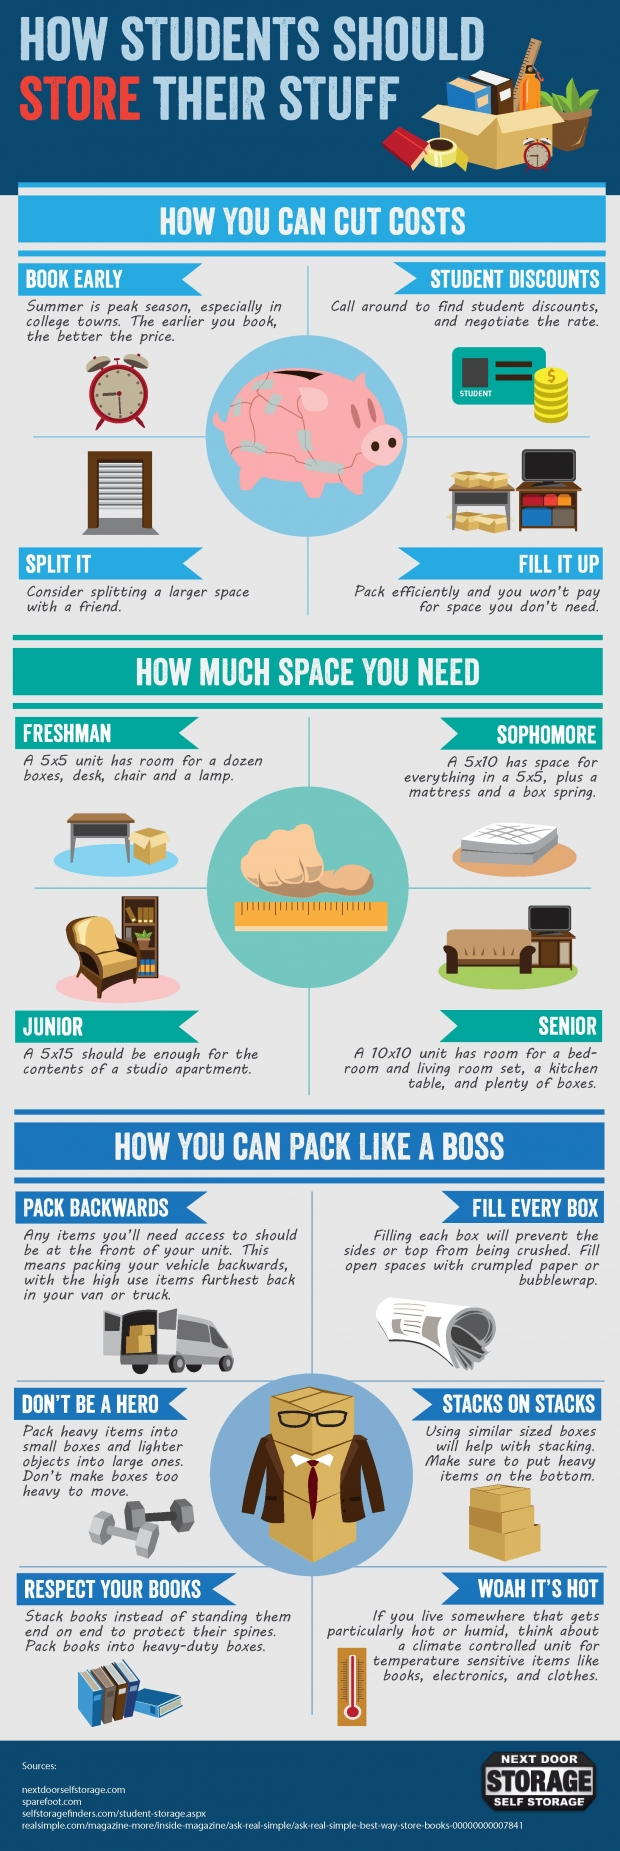 14 Tips On How Students Can Store Their Stuffs